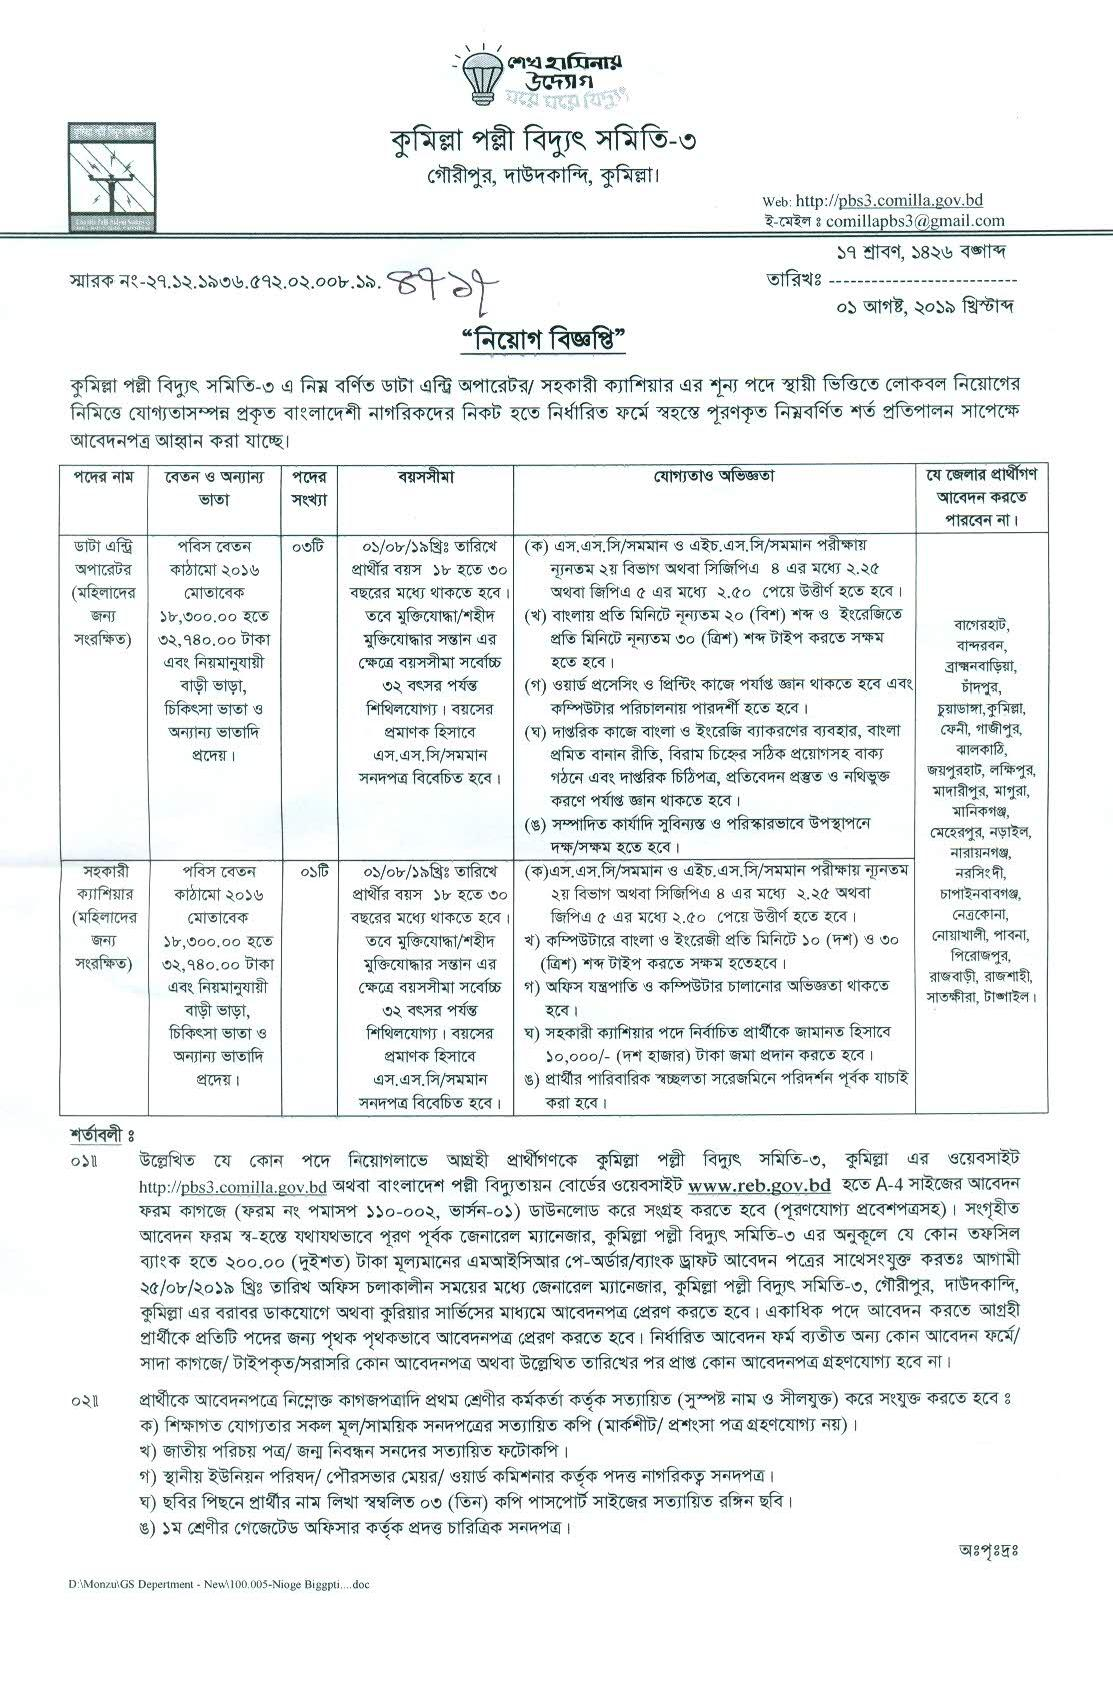 PBS3 new job circular 2019-www pbs3 comilla gov bd - result